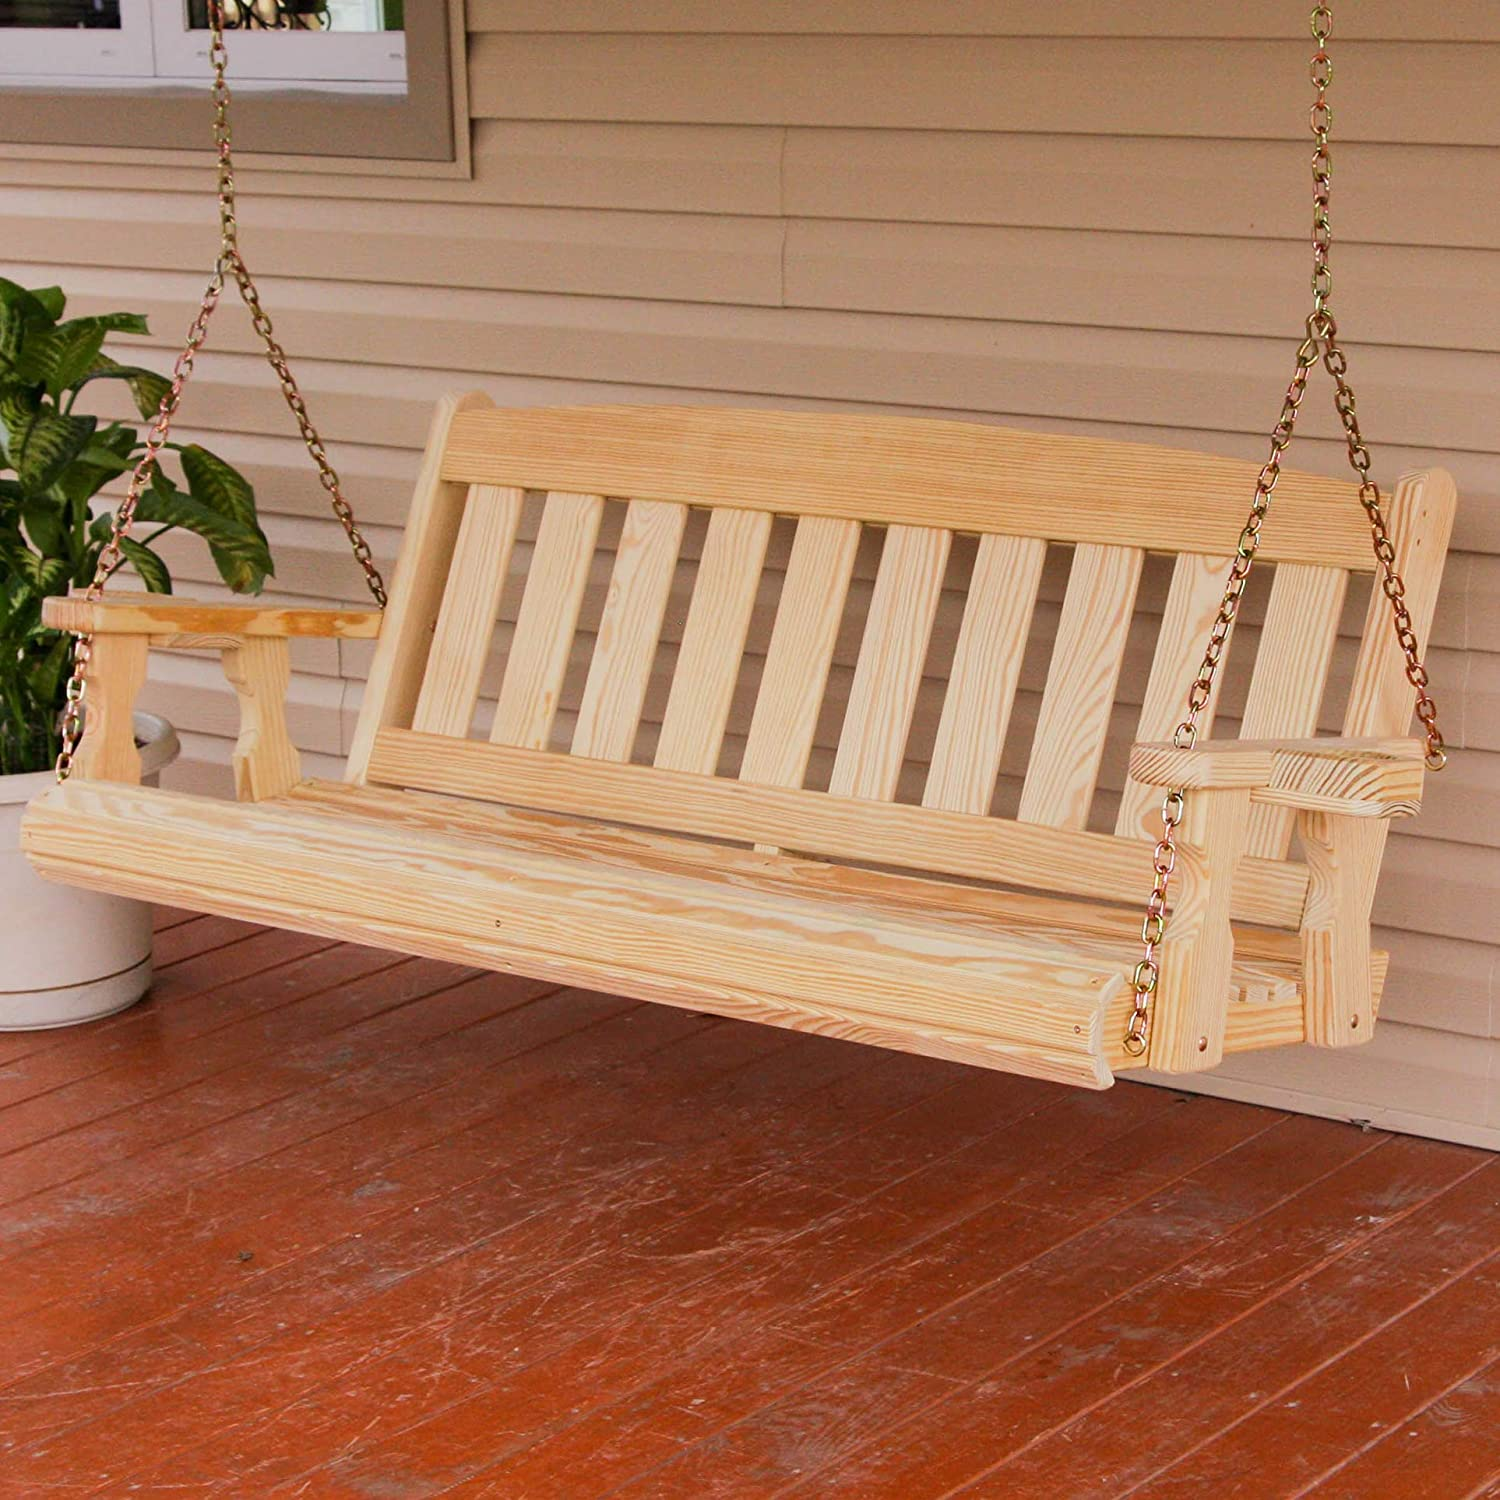 CAF Amish Heavy Duty 800 Lb Mission 5ft. Treated Porch Swing With Cupholders